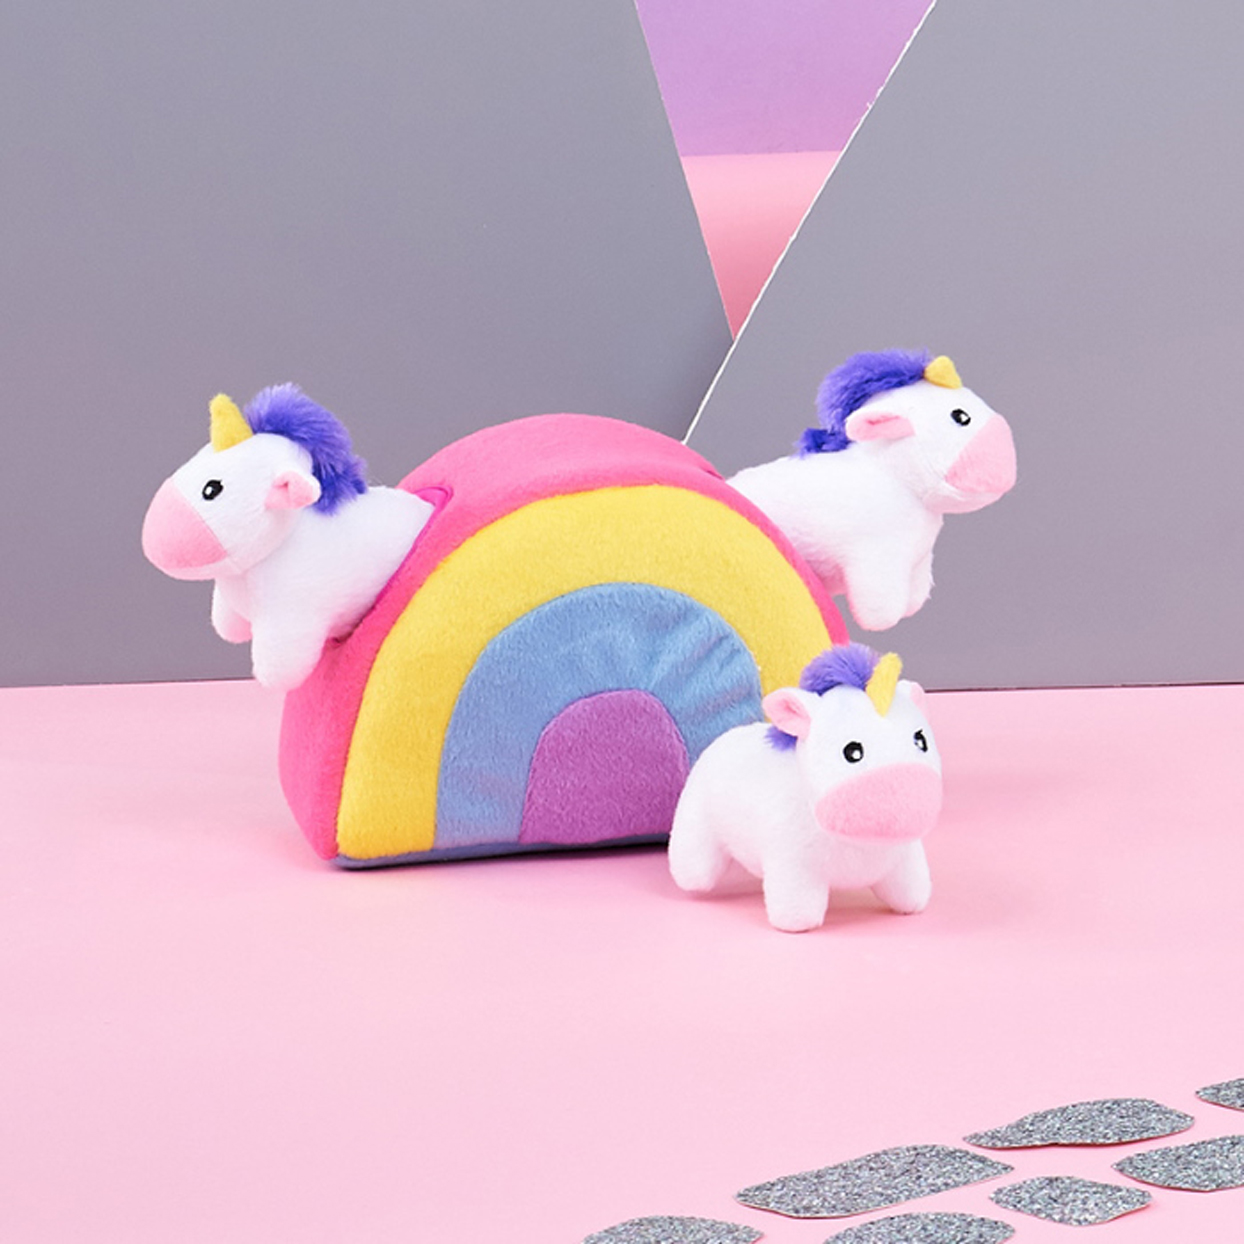 zippypaws-burrow-interactive-squeaky-hide-and-seek-unicorn-toy